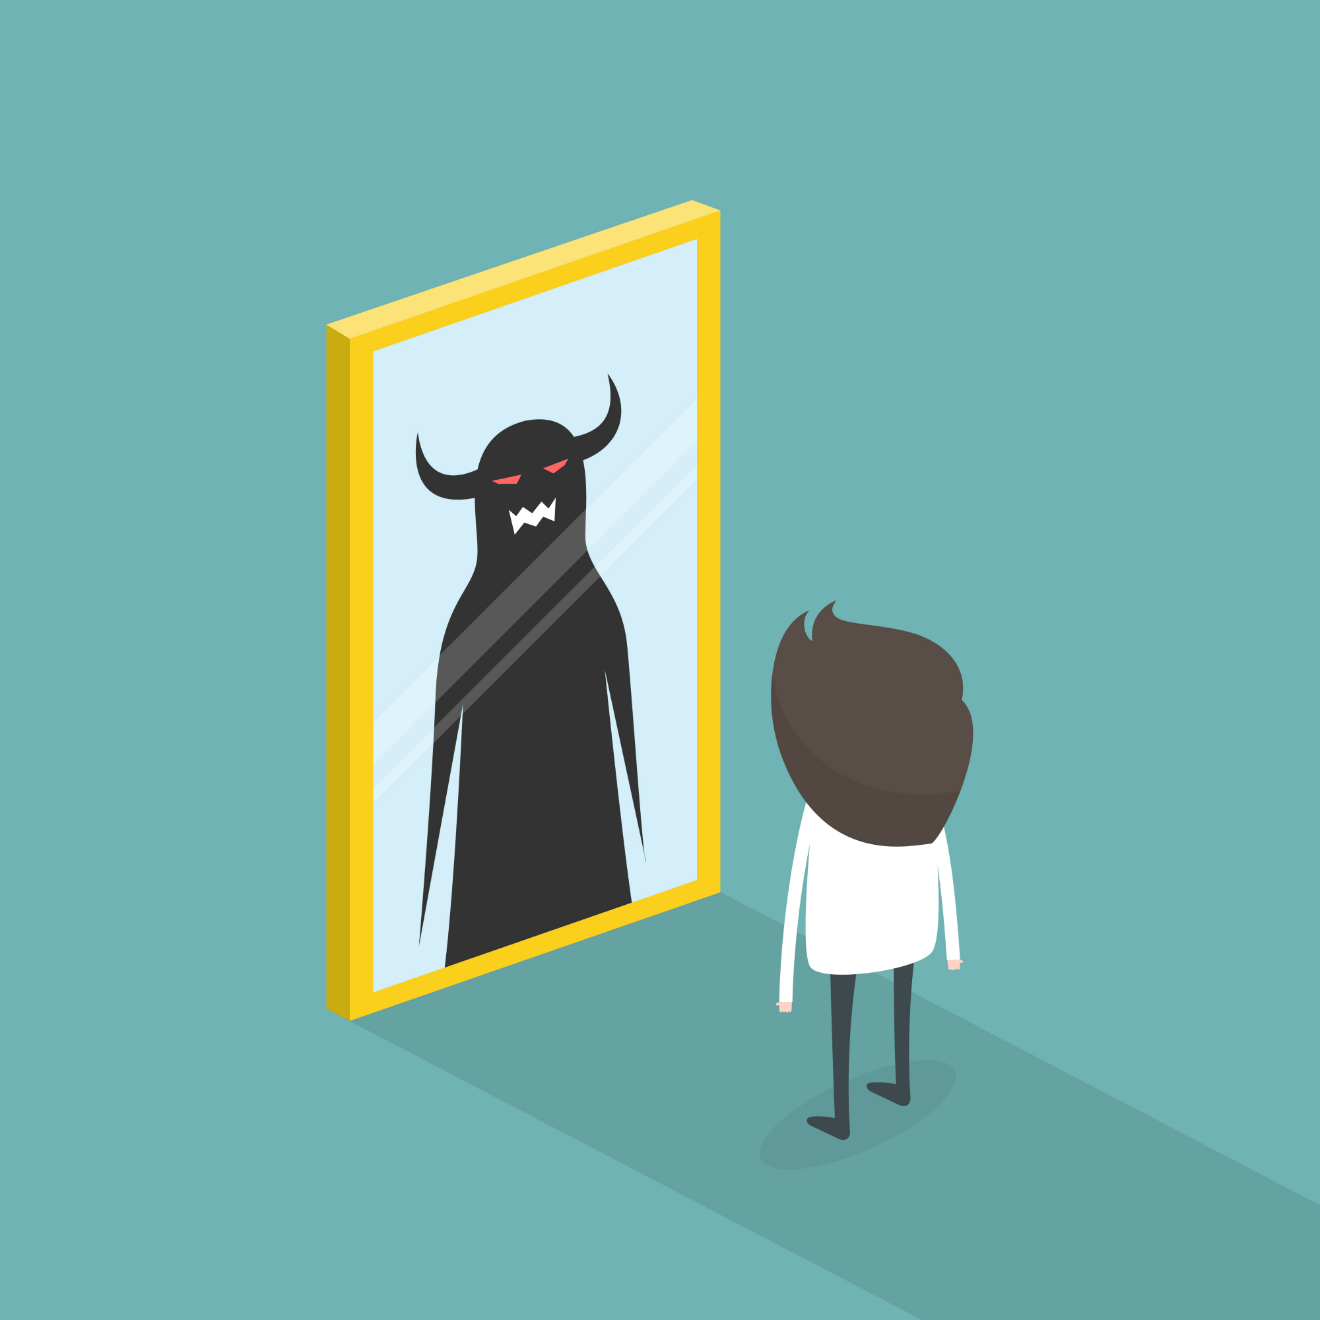 demon in mirror cartoon image